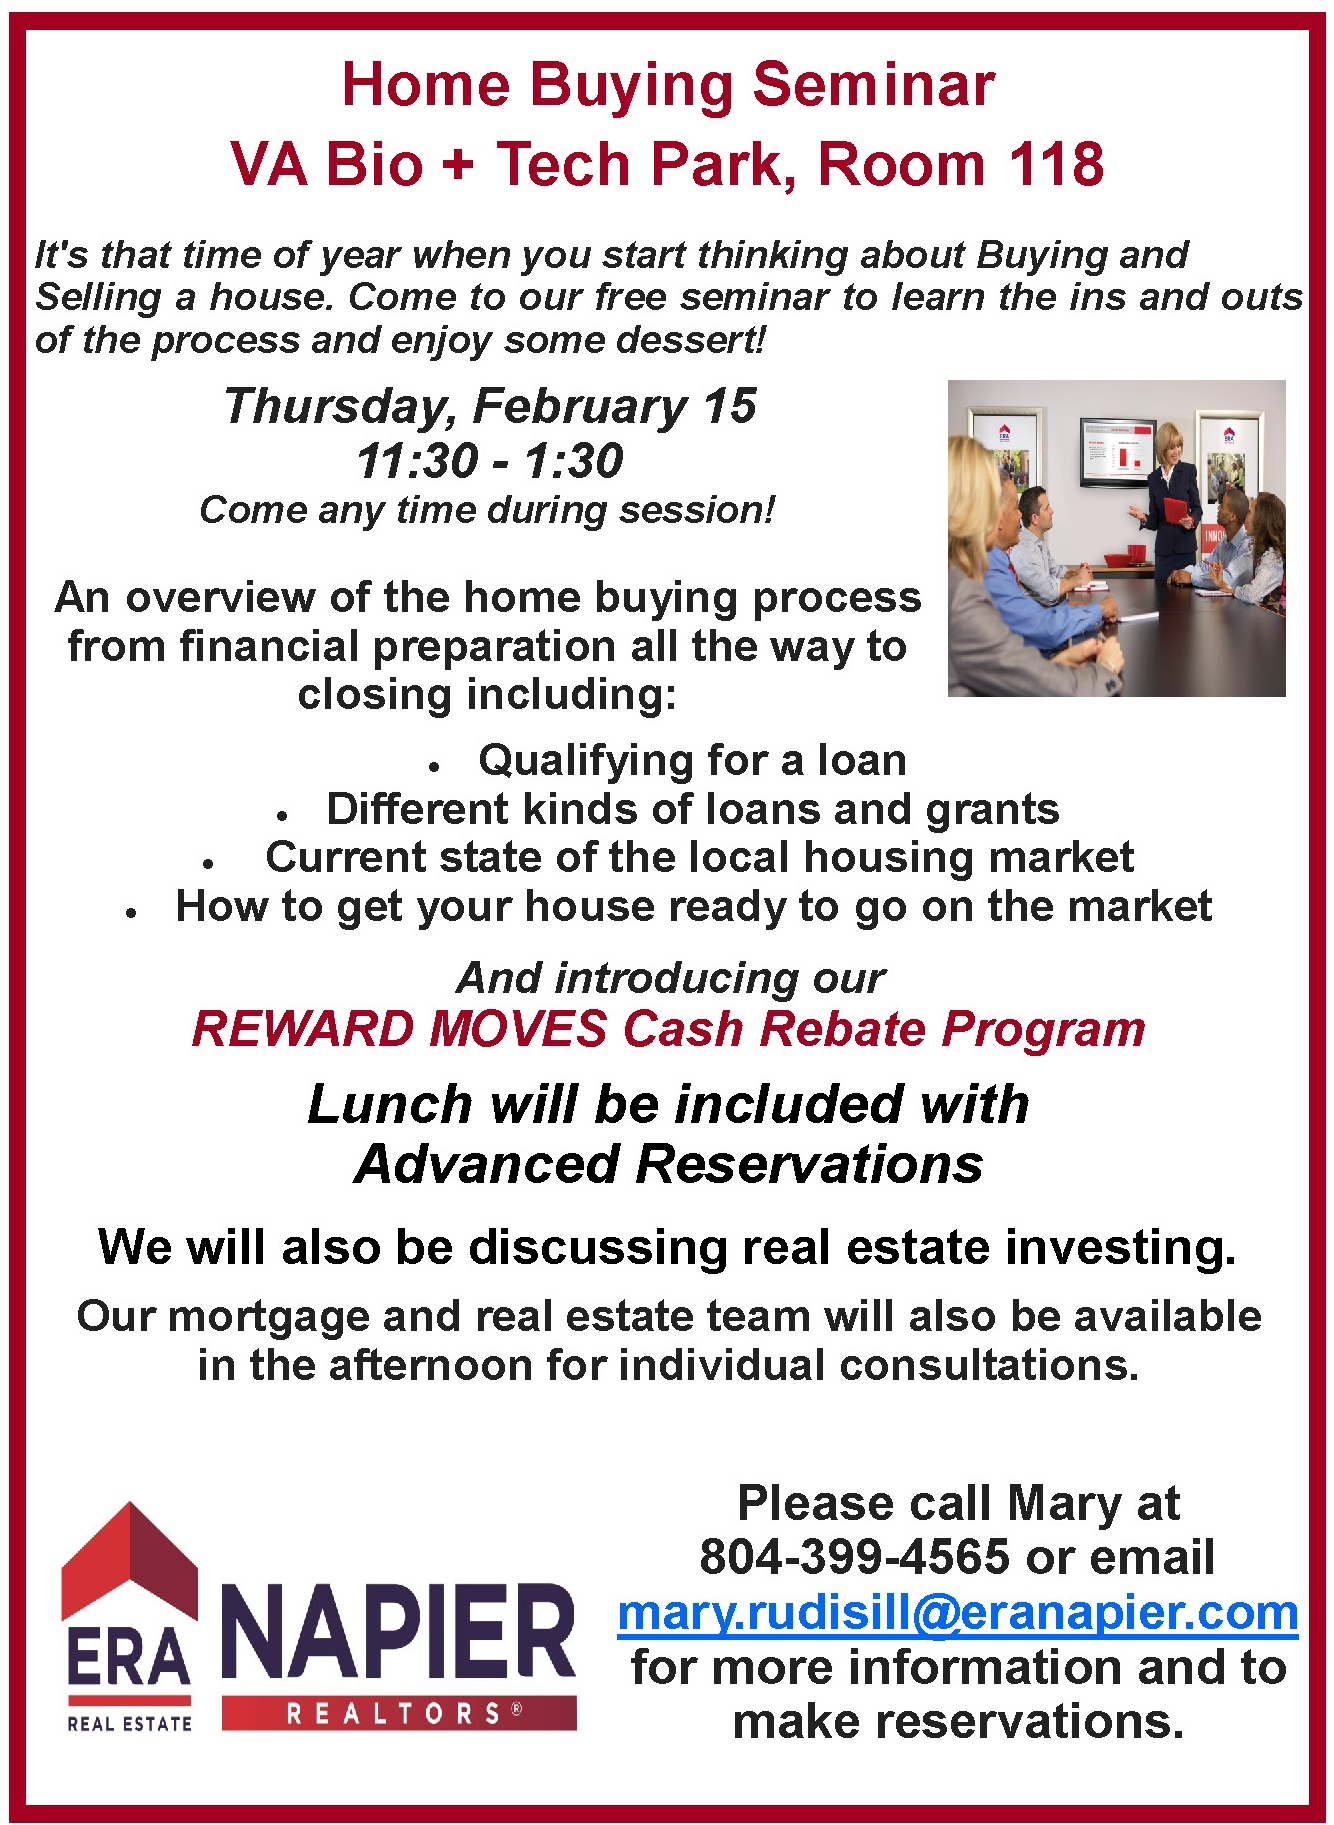 Home Buying Seminar 2-15-18.jpg